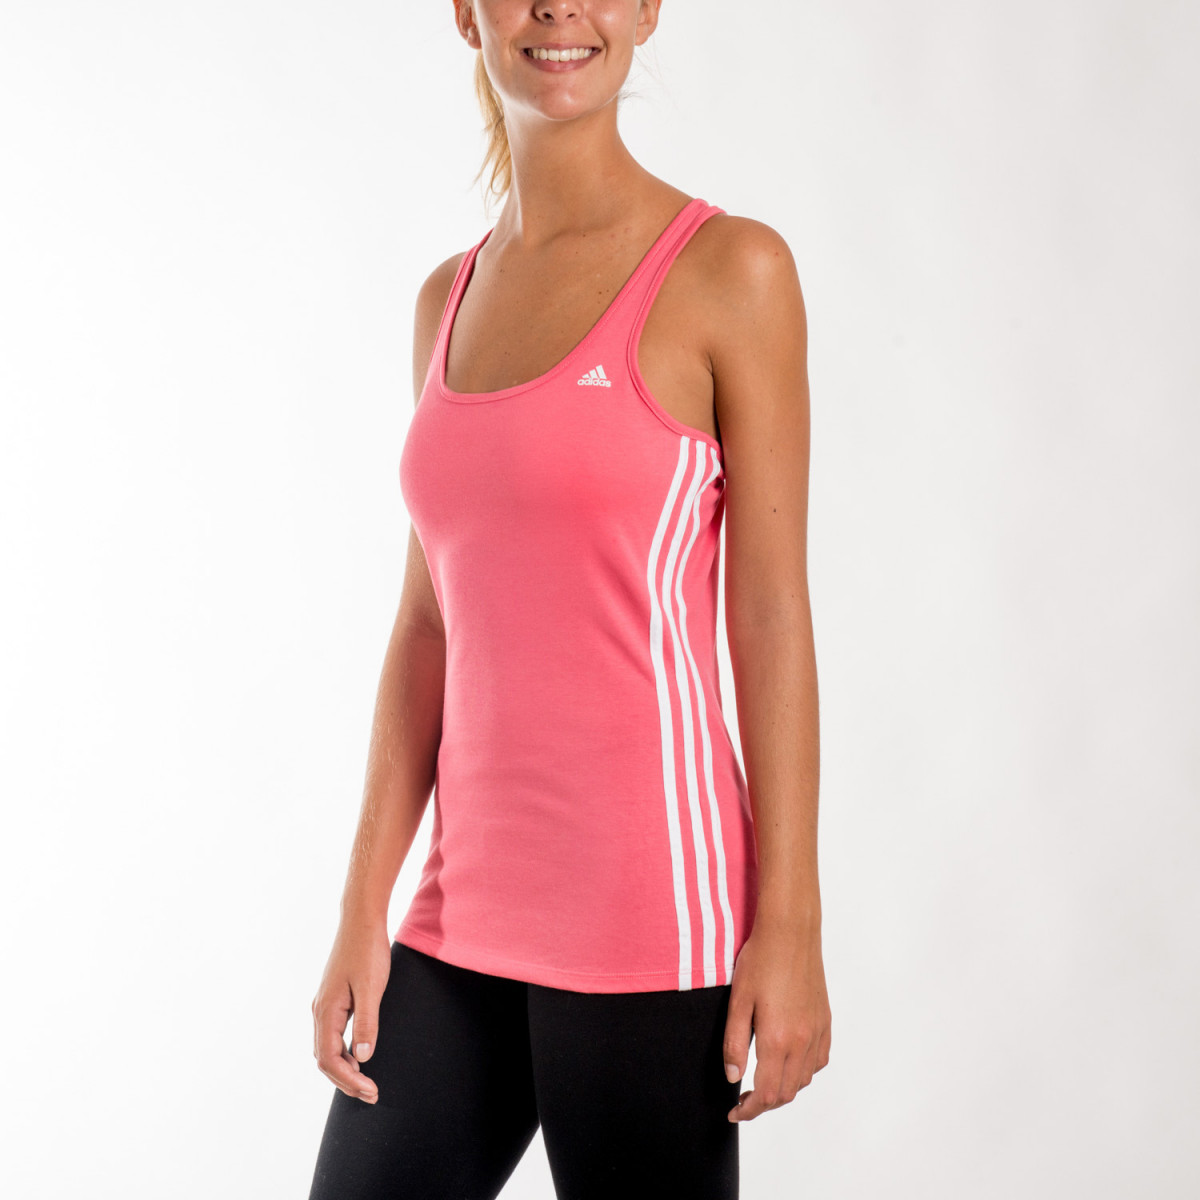 MUSCULOSA ADIDAS ESS MID 3S TANK